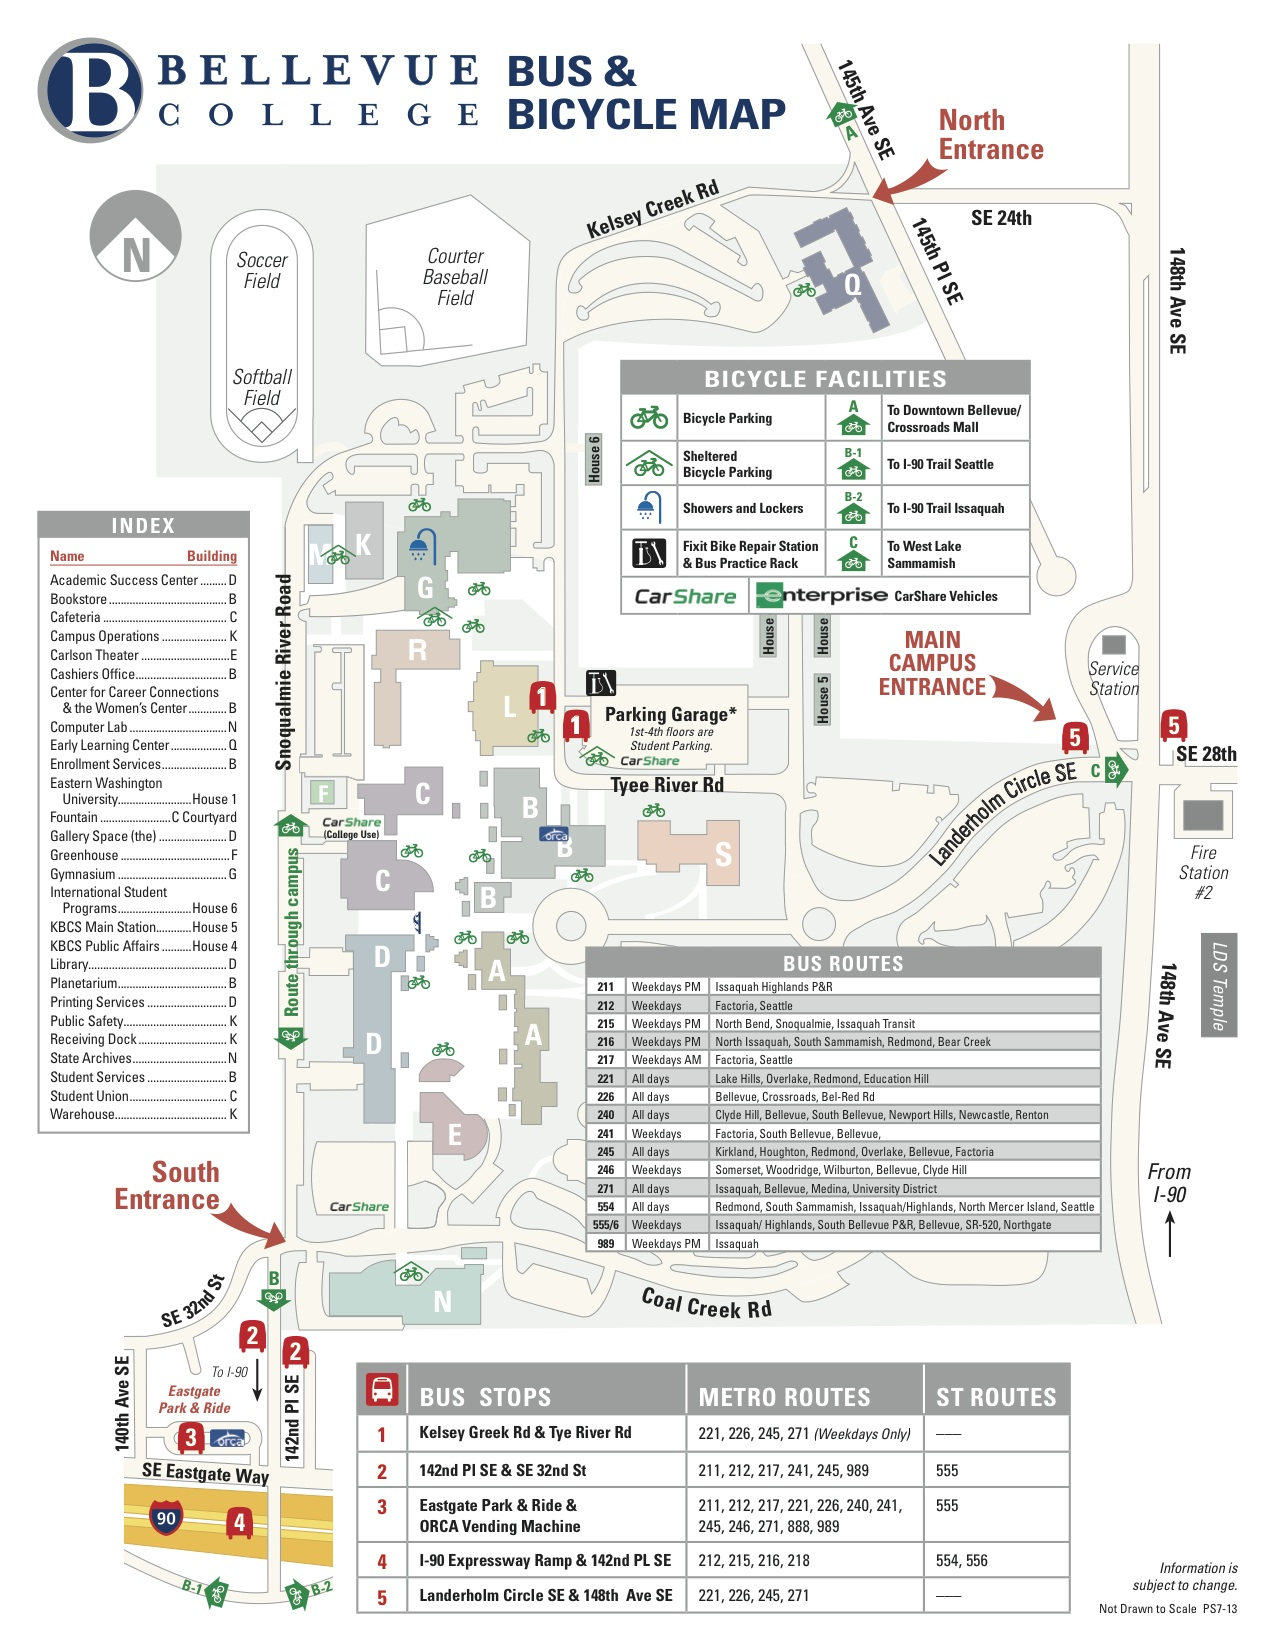 Bus and Bicycle Map of Bellevue College showing bus stops and bicycle racks. Links to larger version of image.